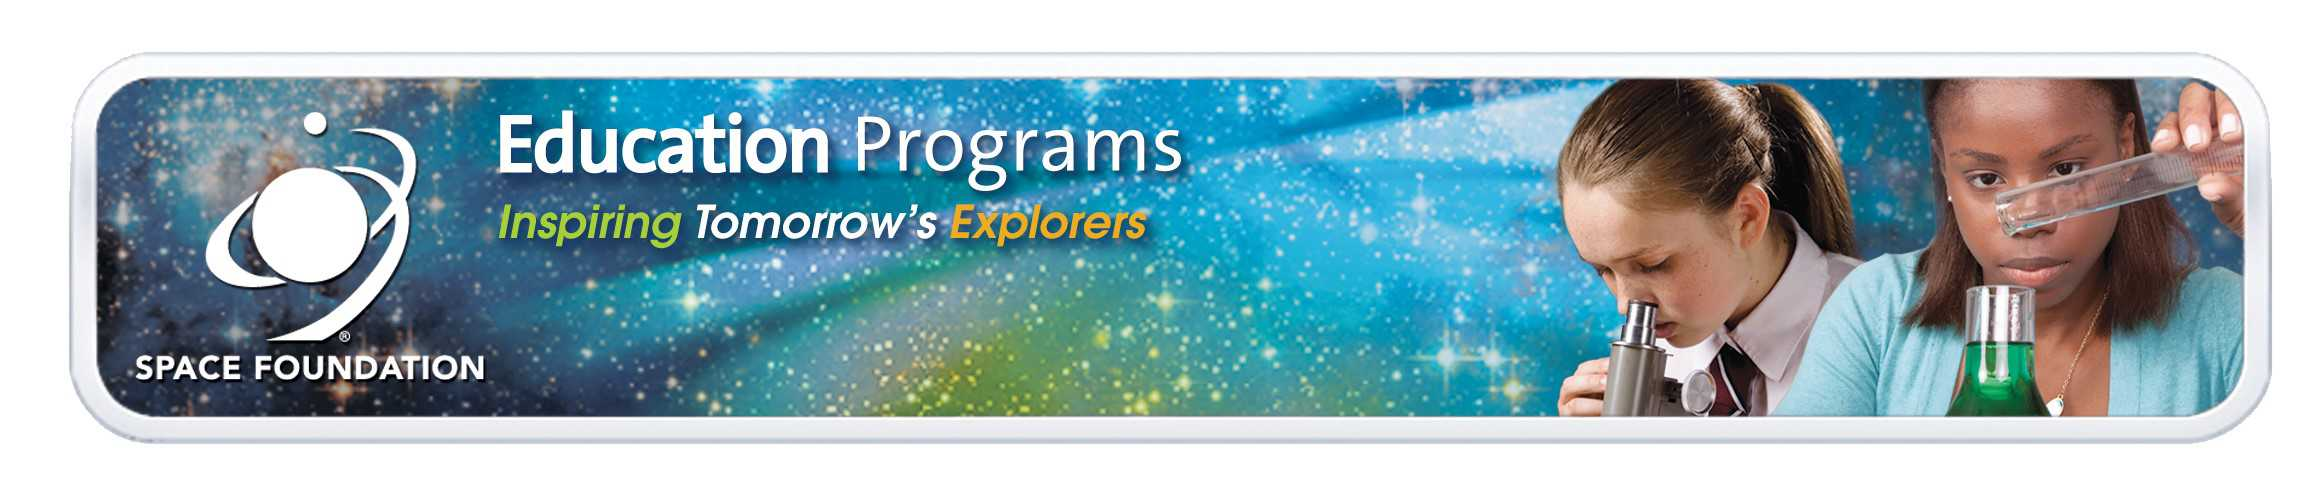 Space Foundation Education Programs: Inspiring Tomorrow's Explorers